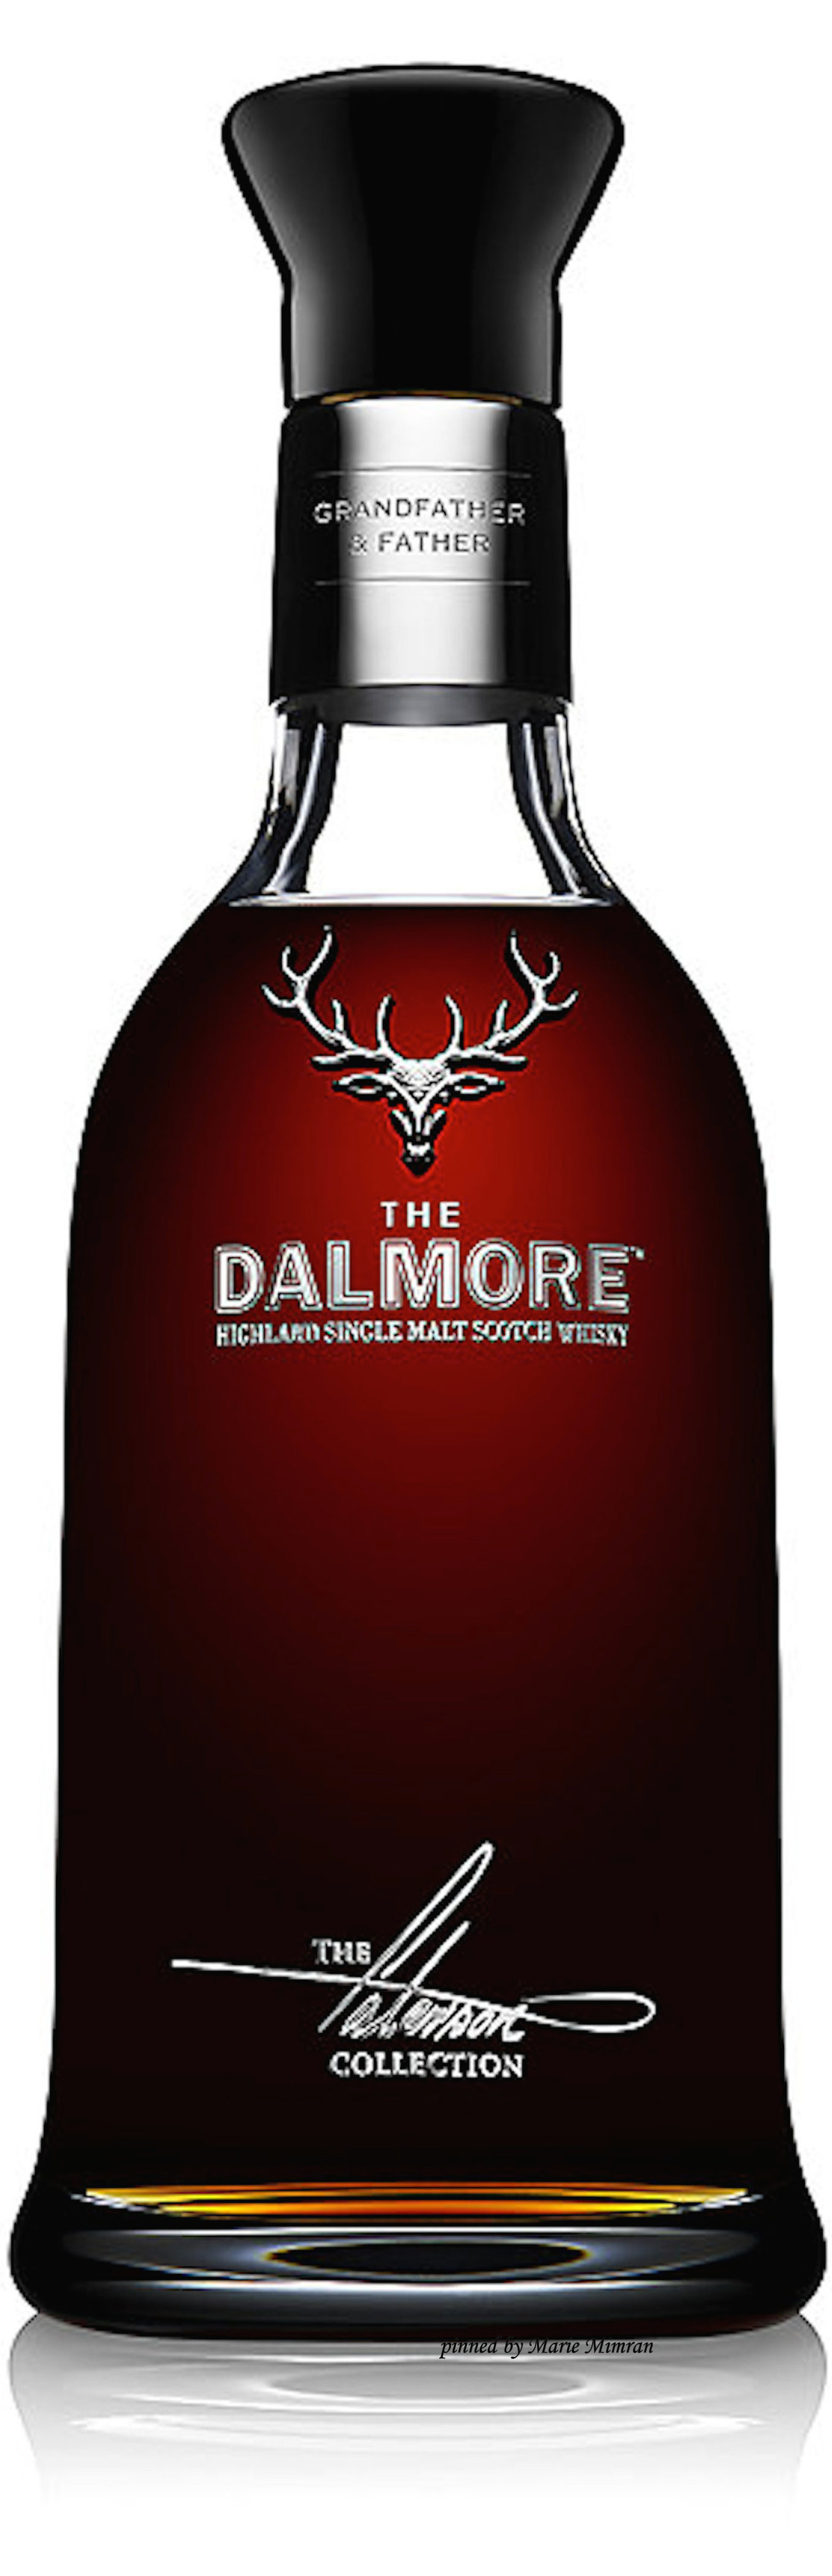 The Dalmore Paterson Collection 987 500 00 Whisky Perfume Bottles Bourbon Whiskey